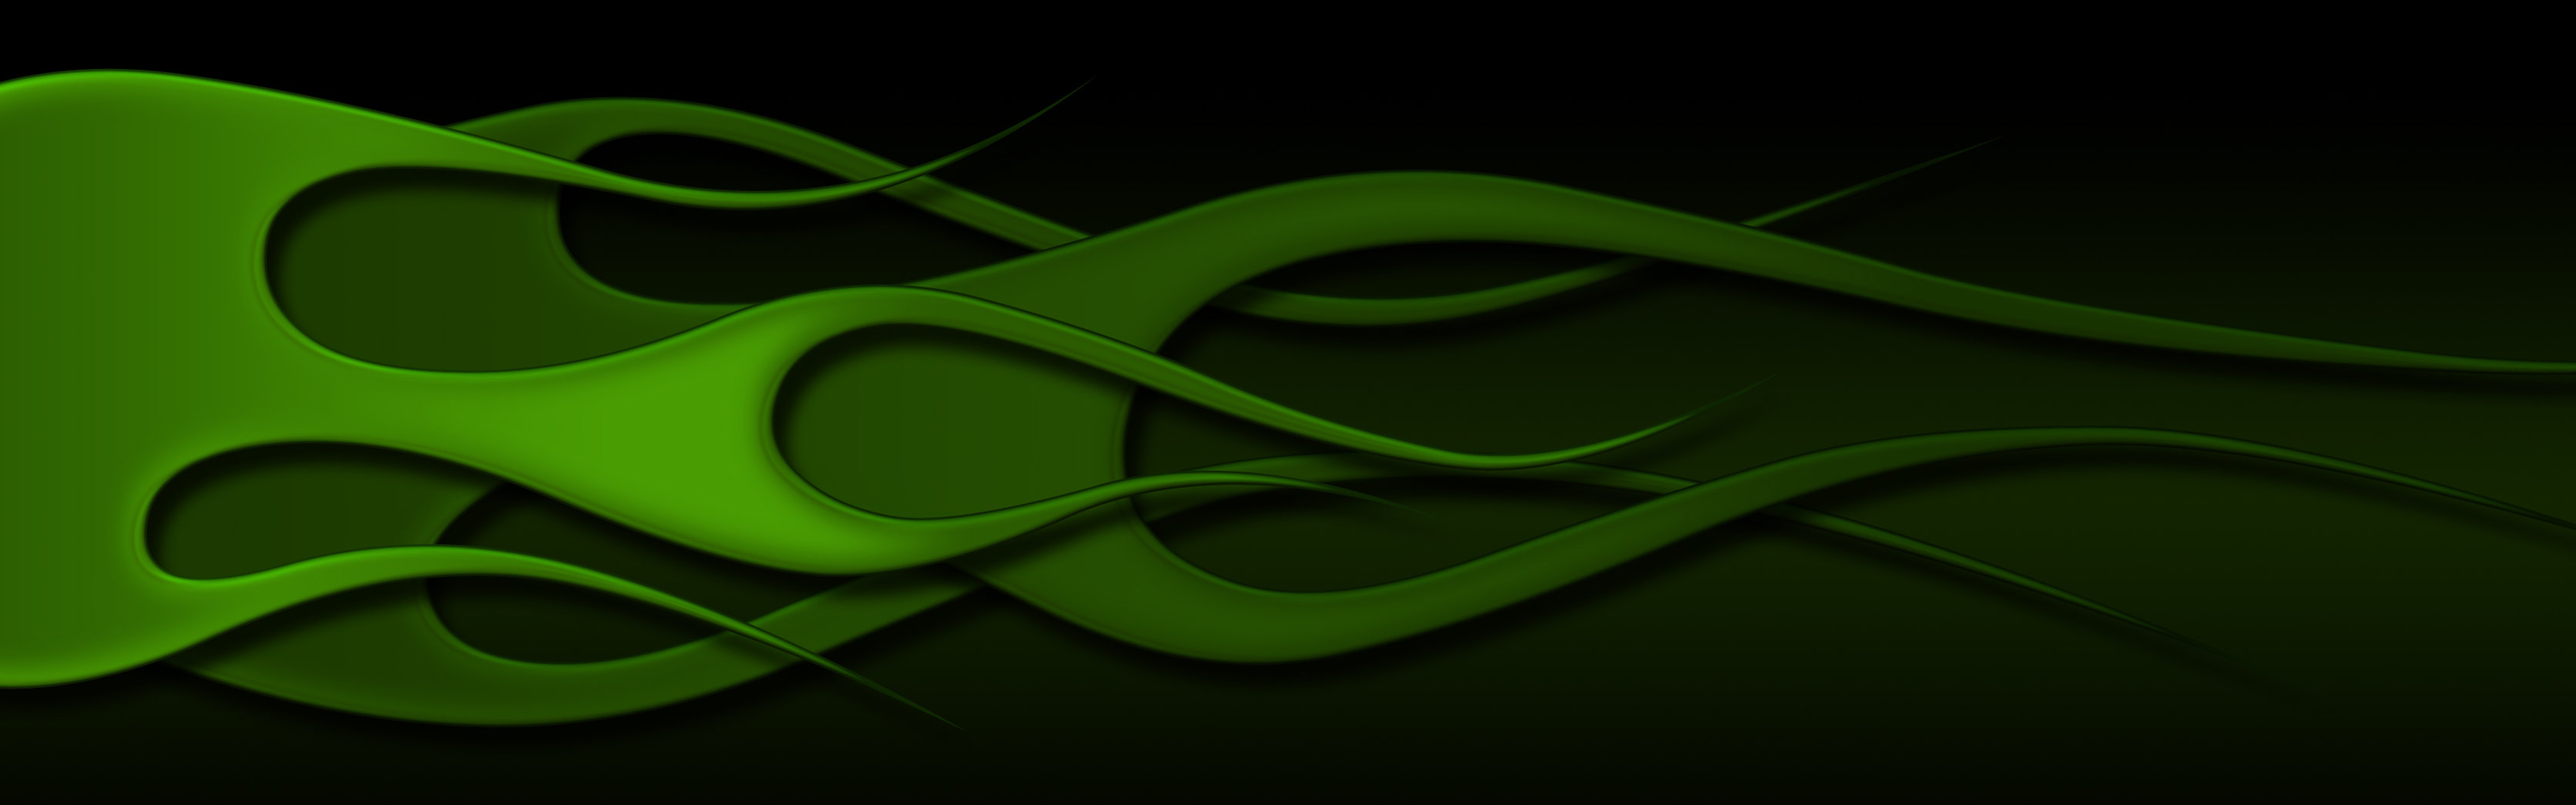 47 Black And Neon Green Wallpaper On Wallpapersafari